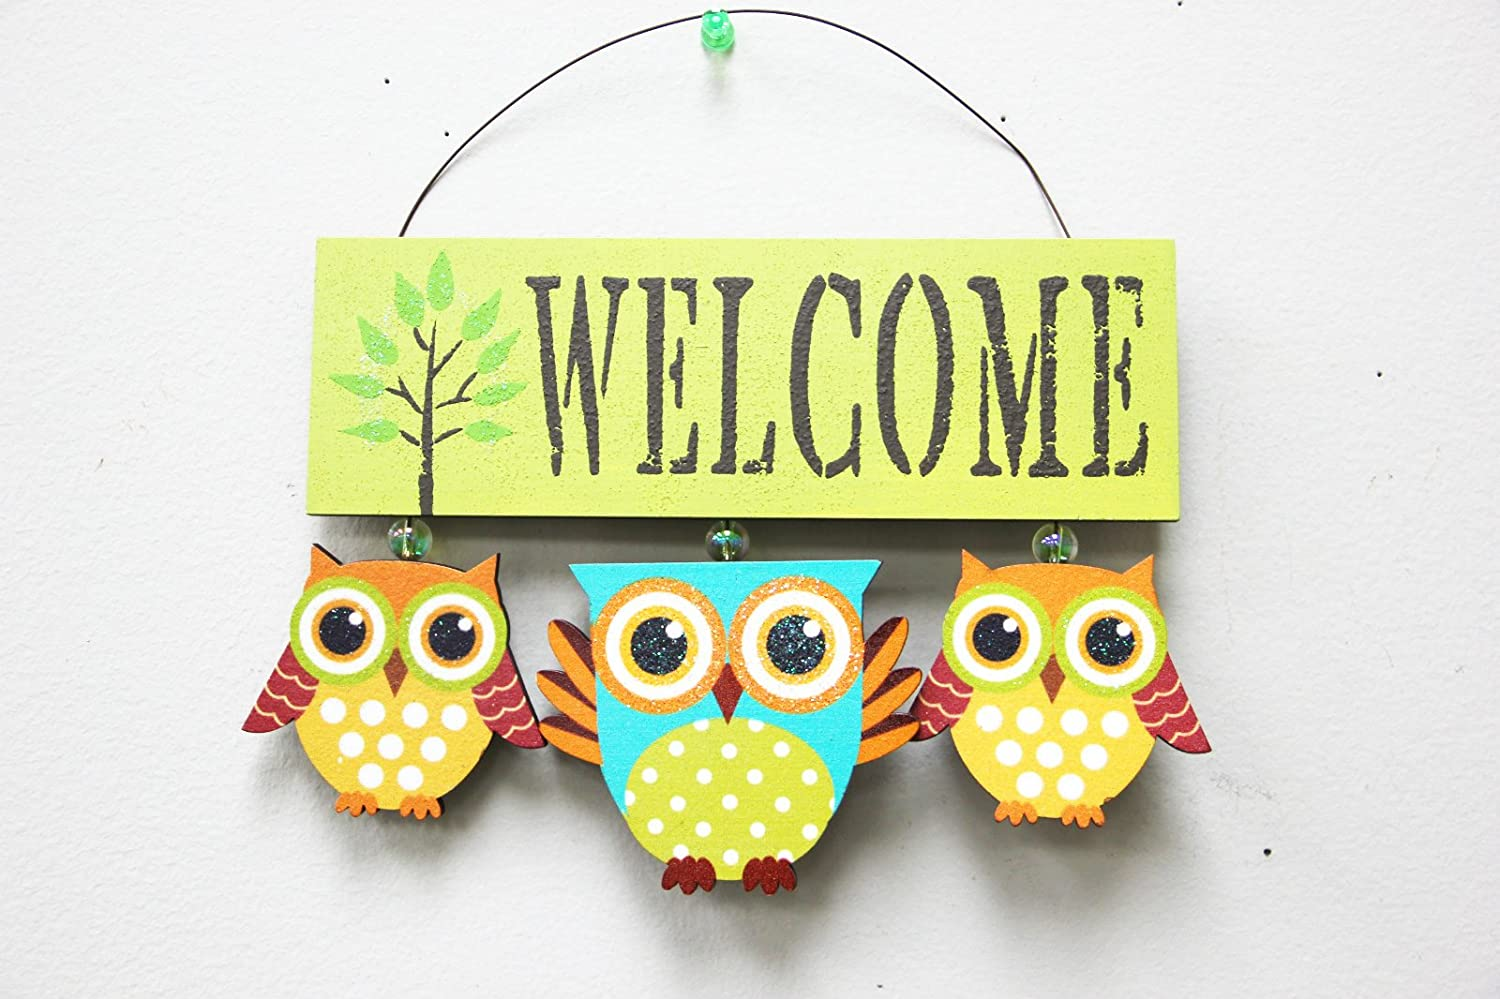 Vintage Designed Wood Owls Welcome Sign Handcrafted Hanging Owl Ornament Kitchen Office Living Room Garden Wall Art Decoration (Green)